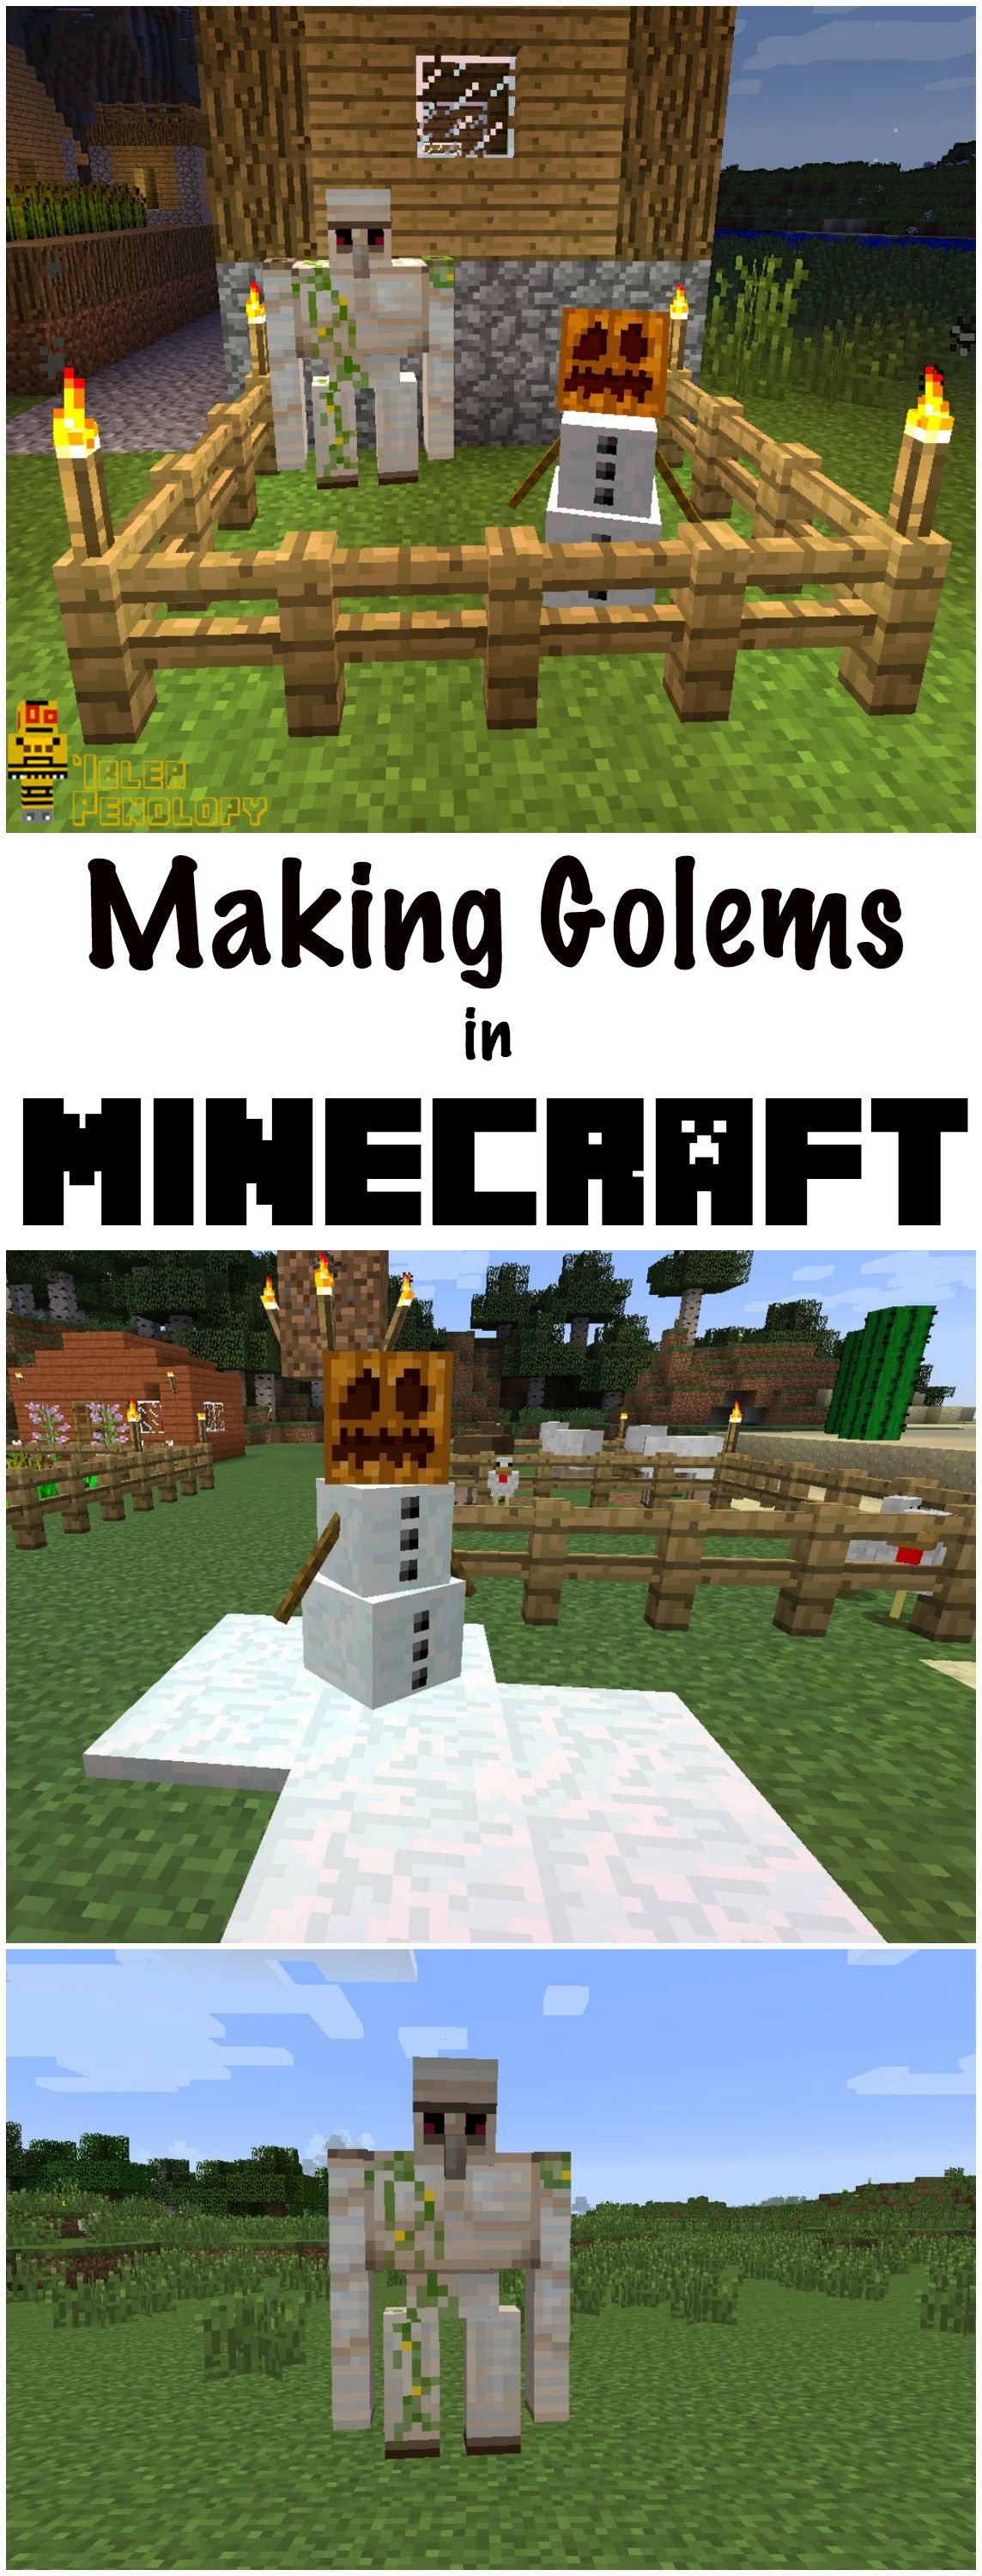 Minecraft Golems can help you attack and defend against enemies. There are two types: Snow Golems and Iron Golems.